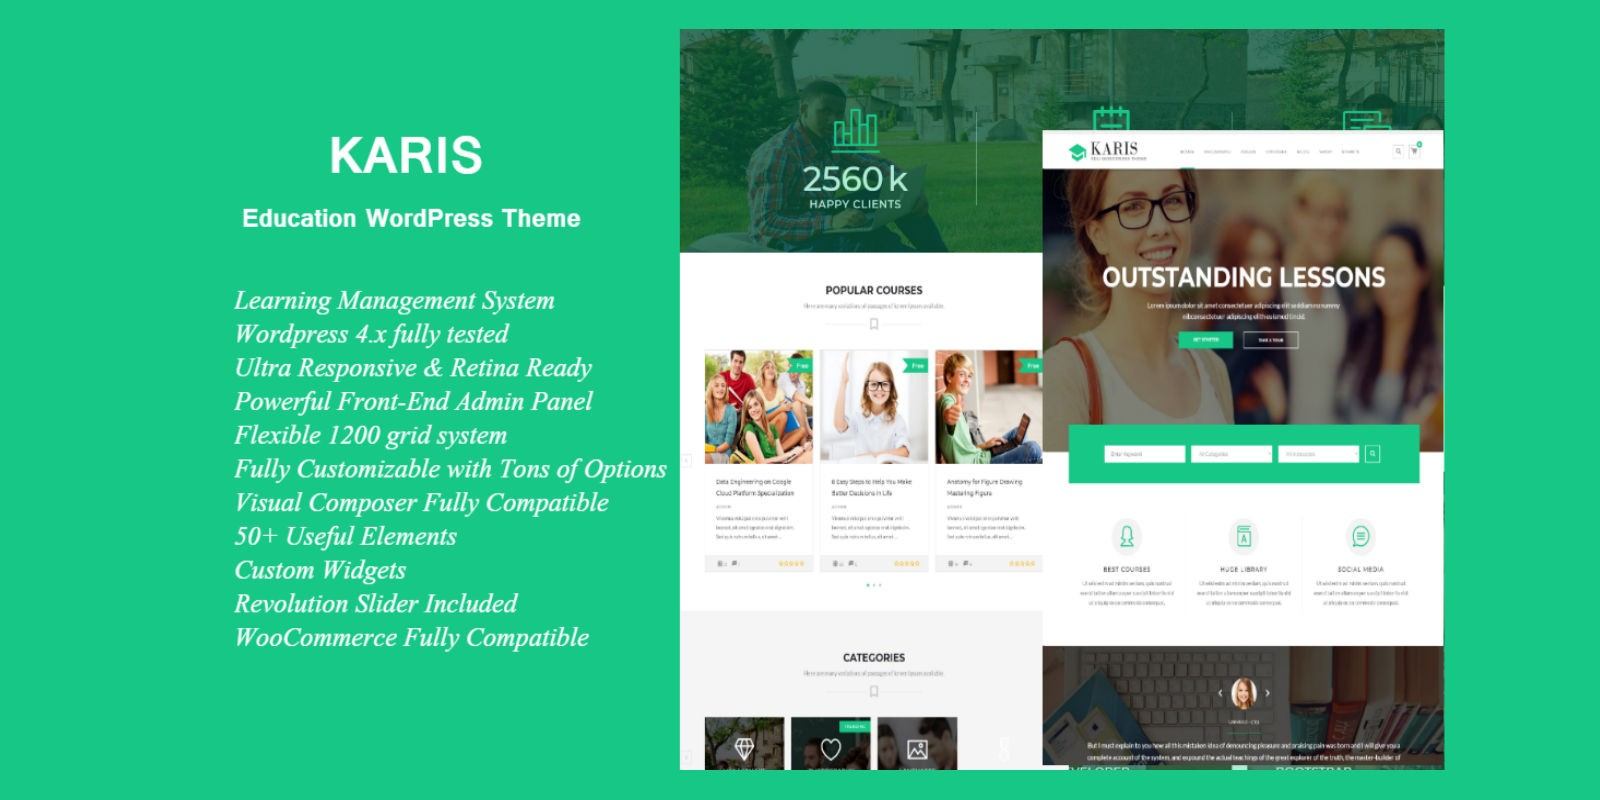 Karis - Education WordPress Theme